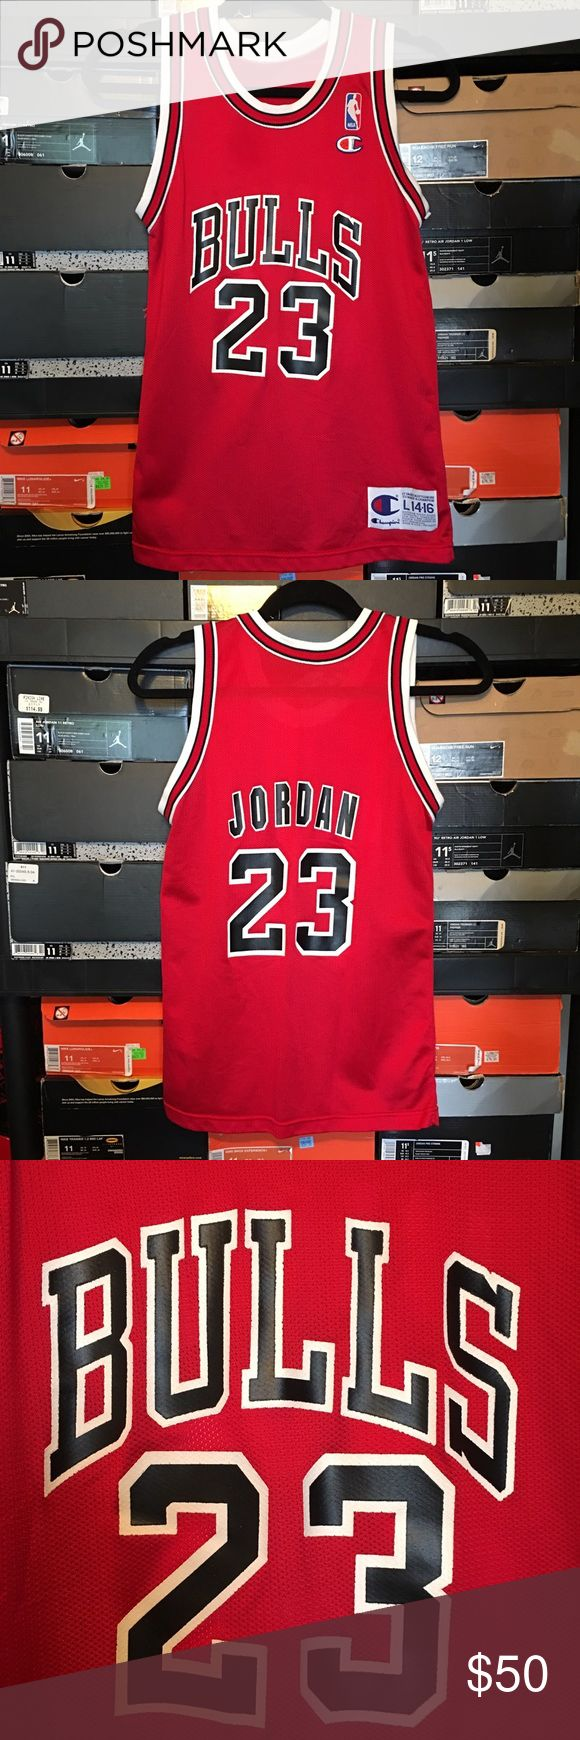 Vintage Champion Bulls Michael Jordan Jersey Vintage Champion Chicago Bulls Michael Jordan Jersey. Men's size Large 14-16. Jersey in excellent condition. Champion Shirts & Tops Tank Tops